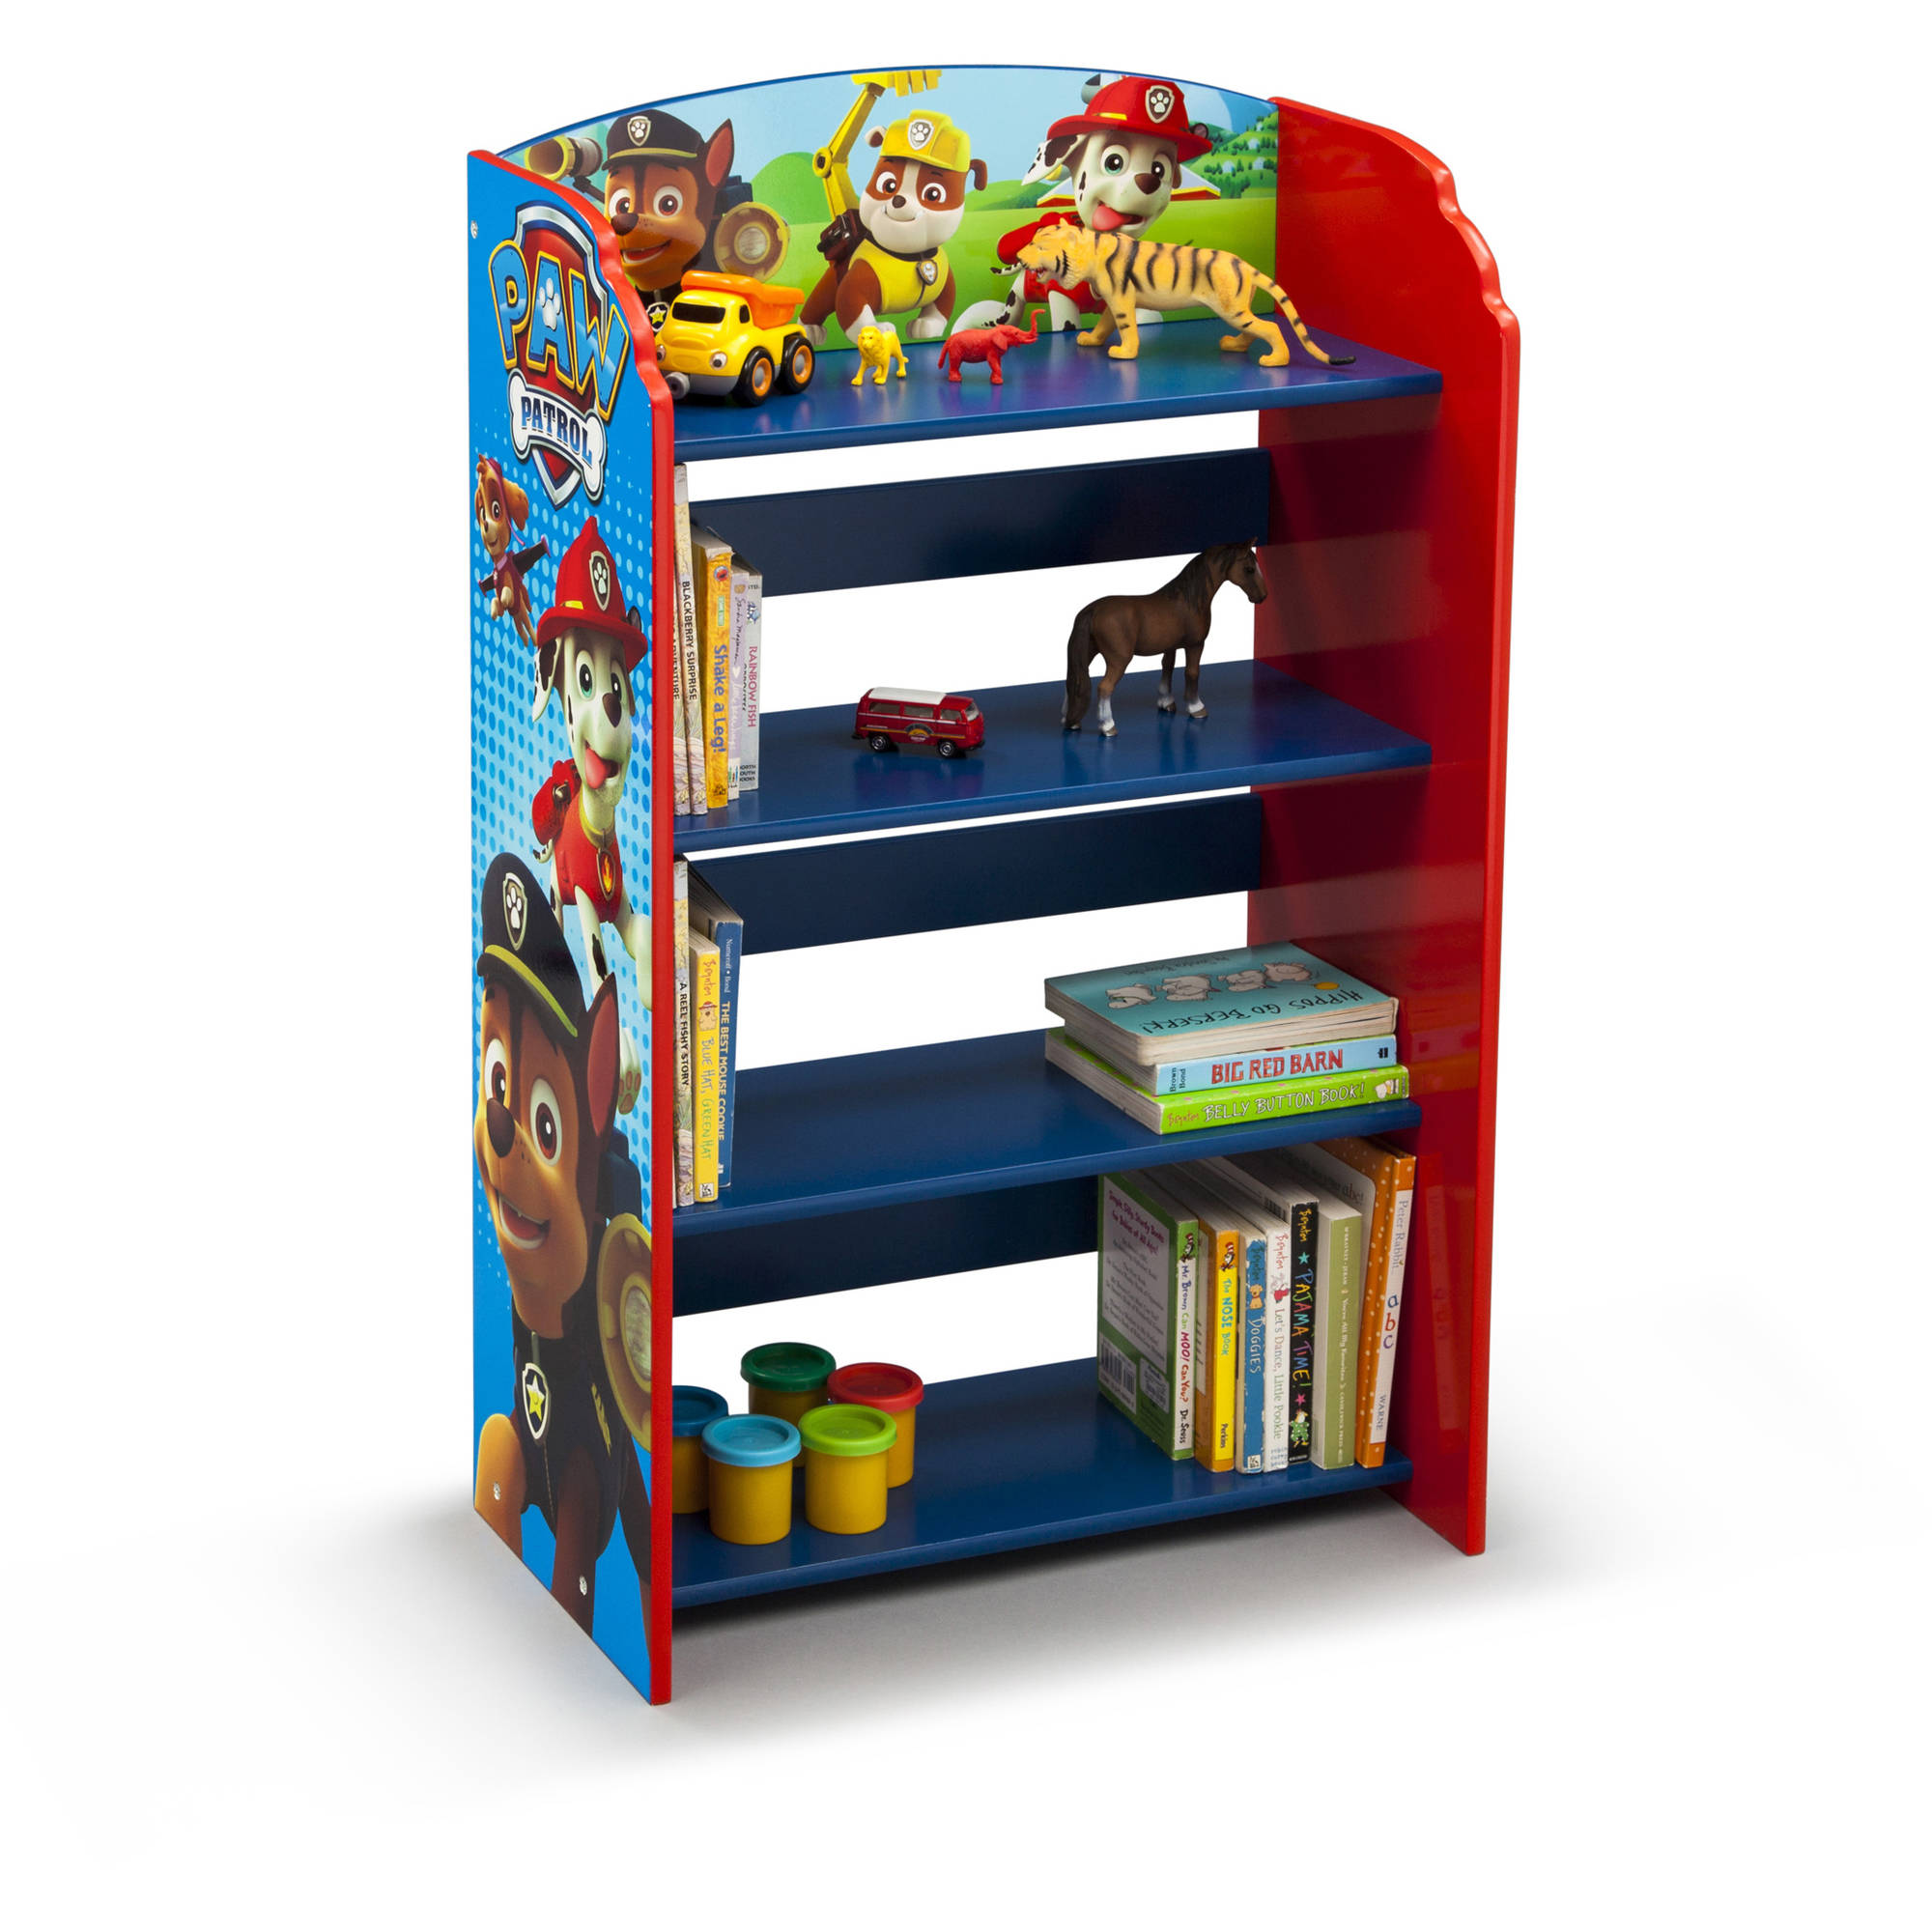 toddler bookshelf - delta children star wars bookshelf walmartcom